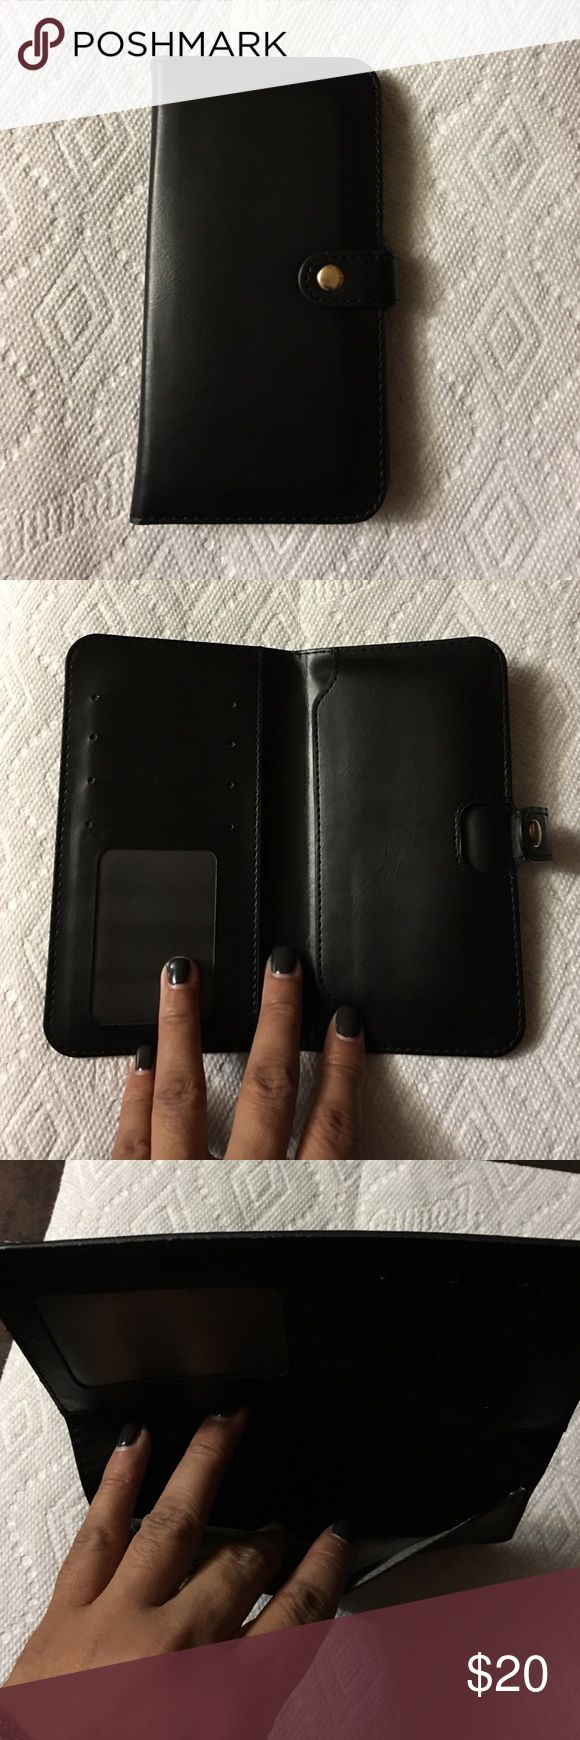 Wallet with pocket for phone Black wallet with cards slots and the side pocket holds your phone.  The side pocket will hold a phone with the screen size 4.7 or smaller. The last picture shows the wallet with an iPhone 6. (iPhone not included) Accessories Phone Cases